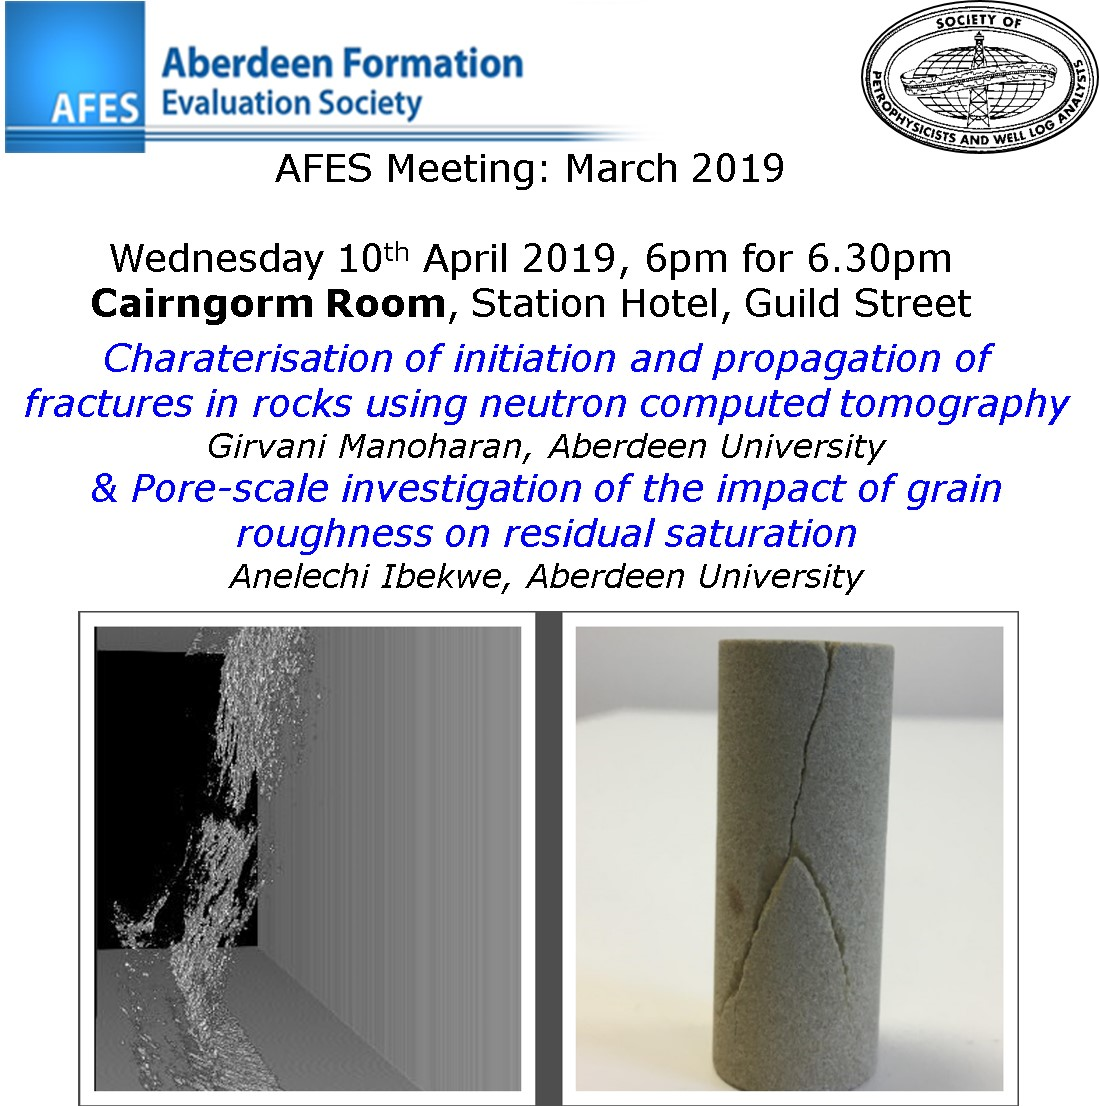 AFES Meeting: 10th April, 2019